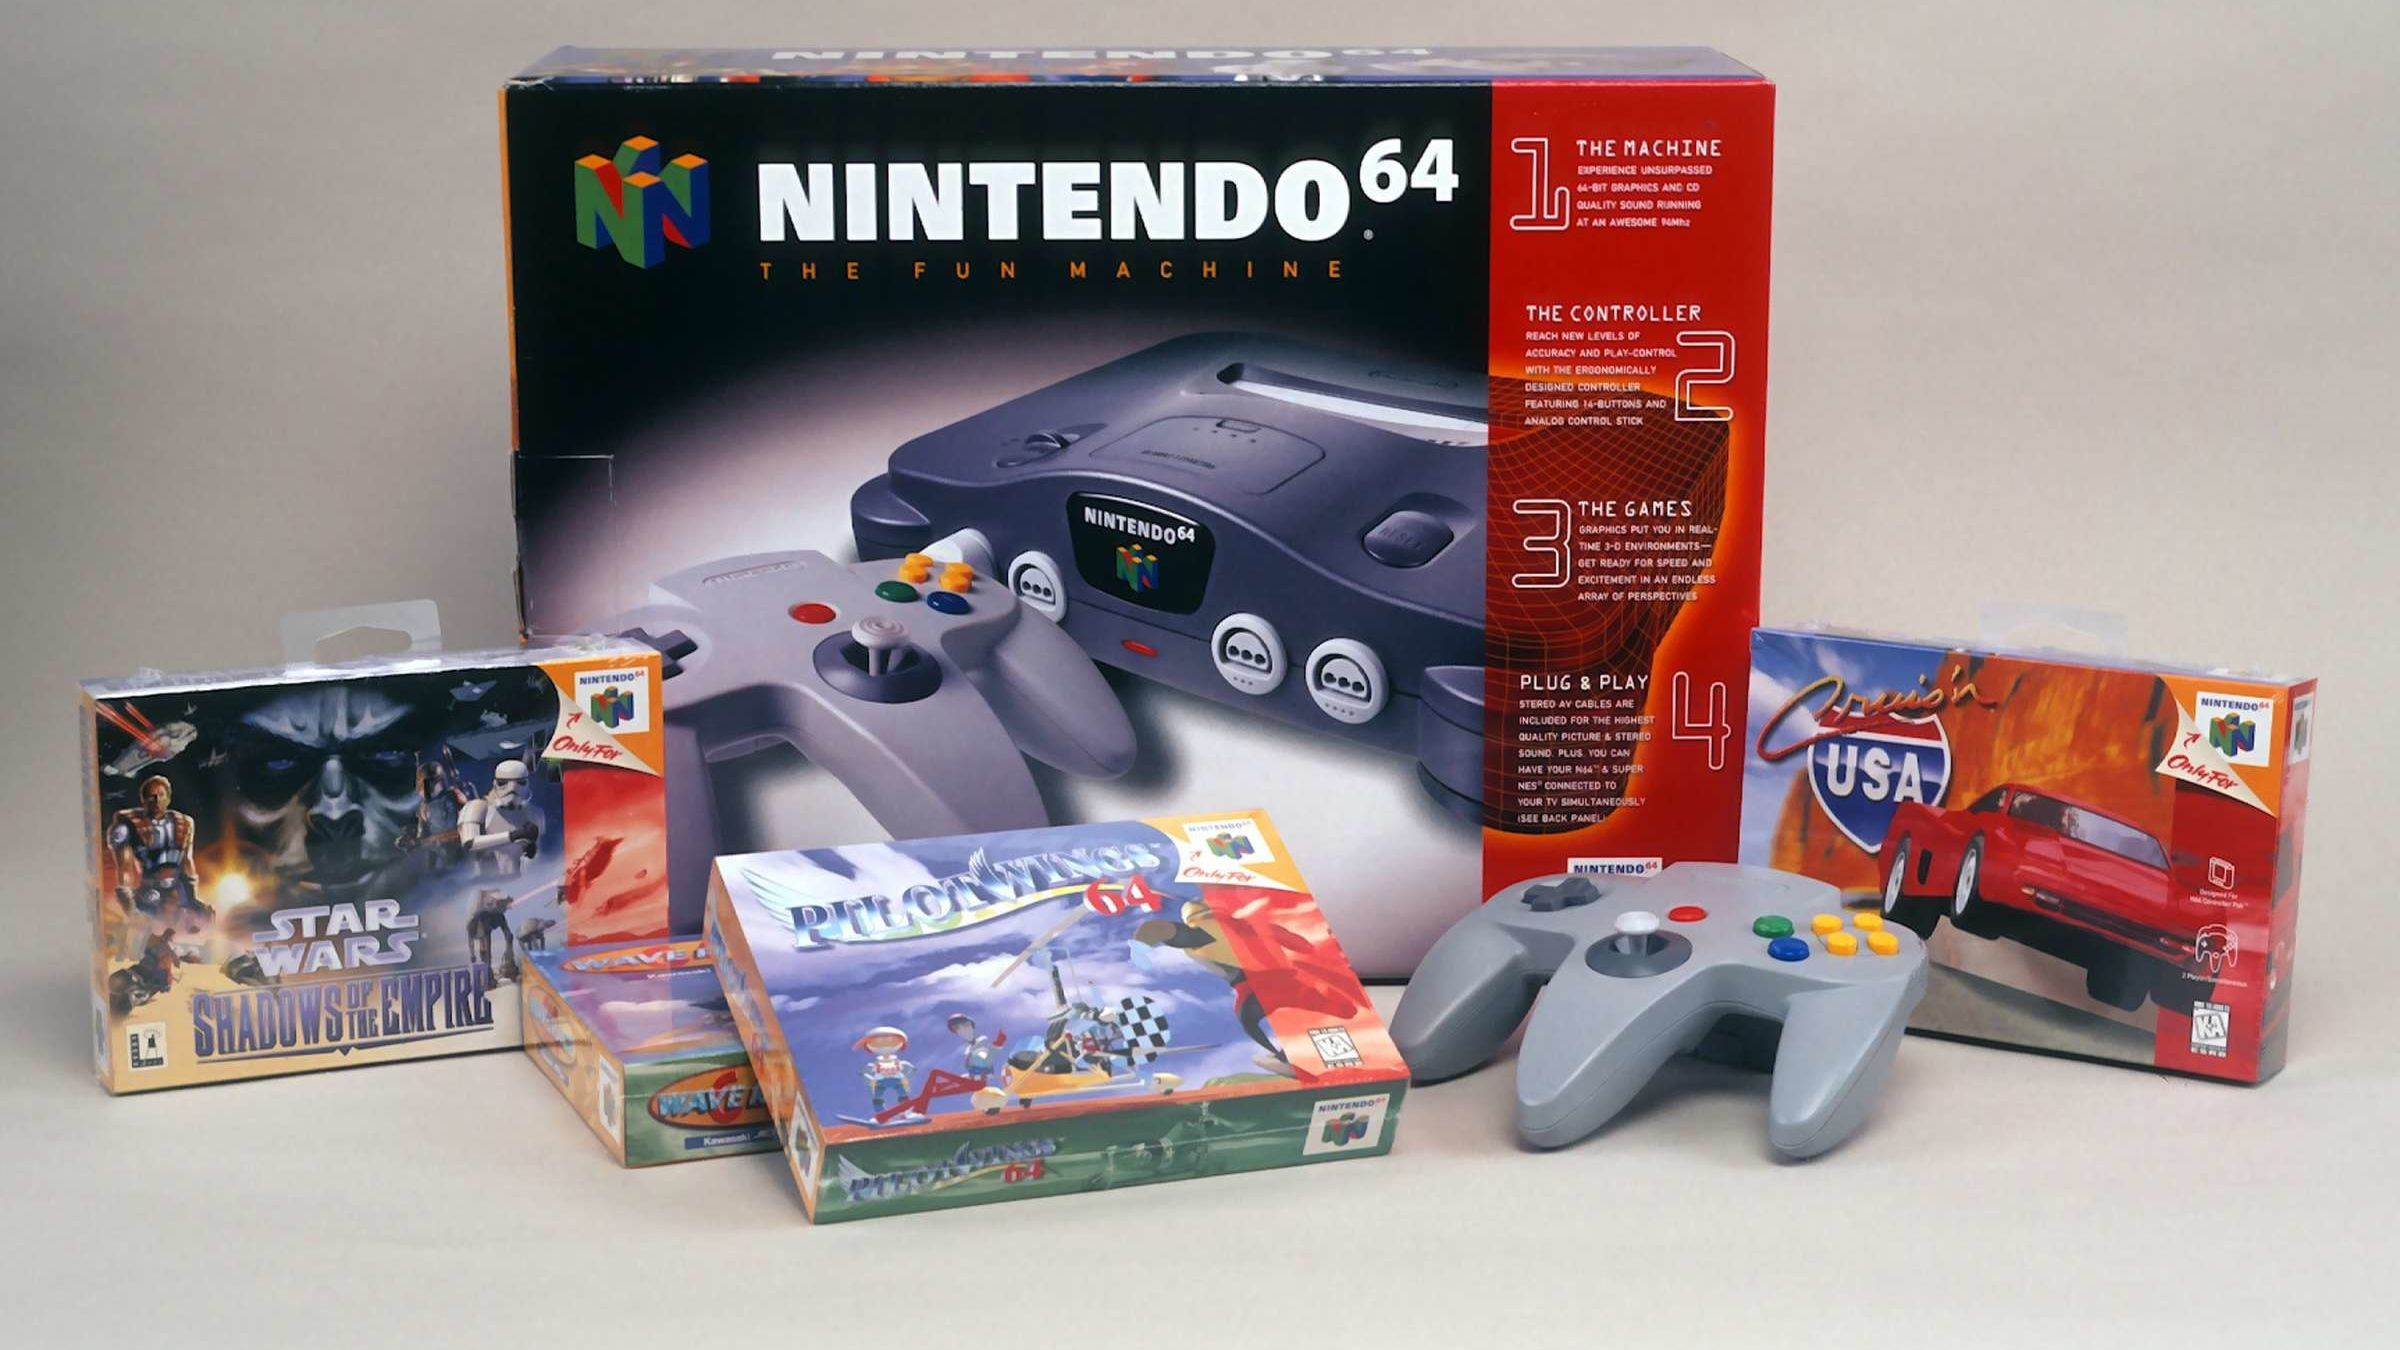 10 Game-Changing Facts About the Nintendo 64